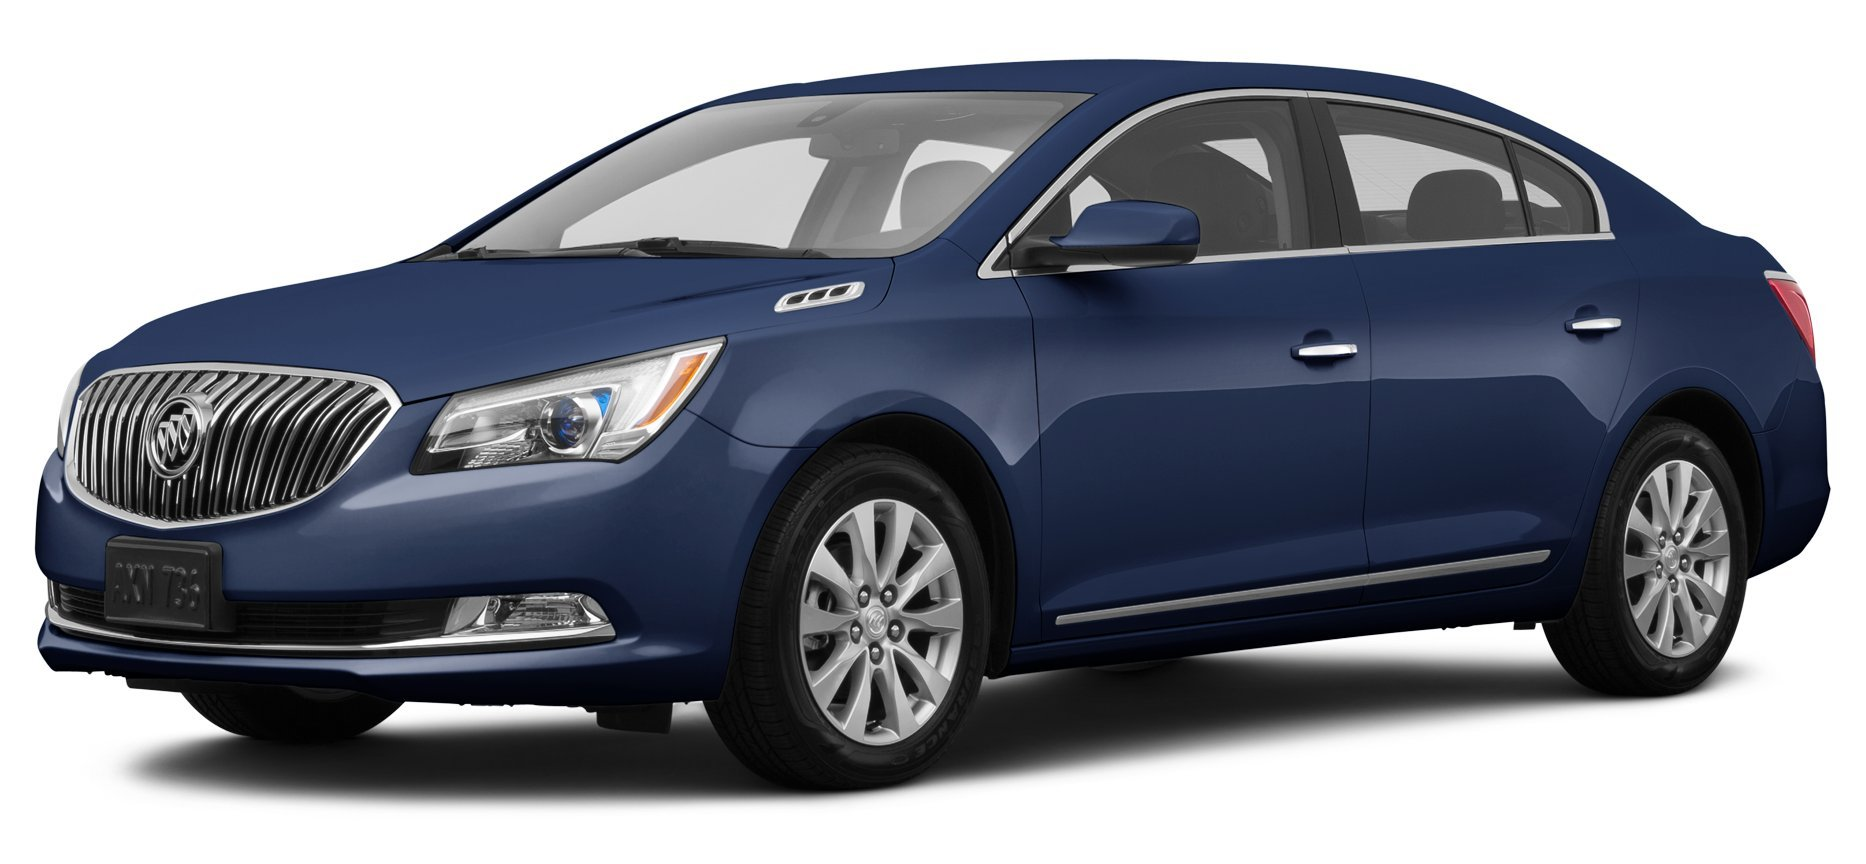 the en buick since and car known ve a guide we it as lacrosse articles through